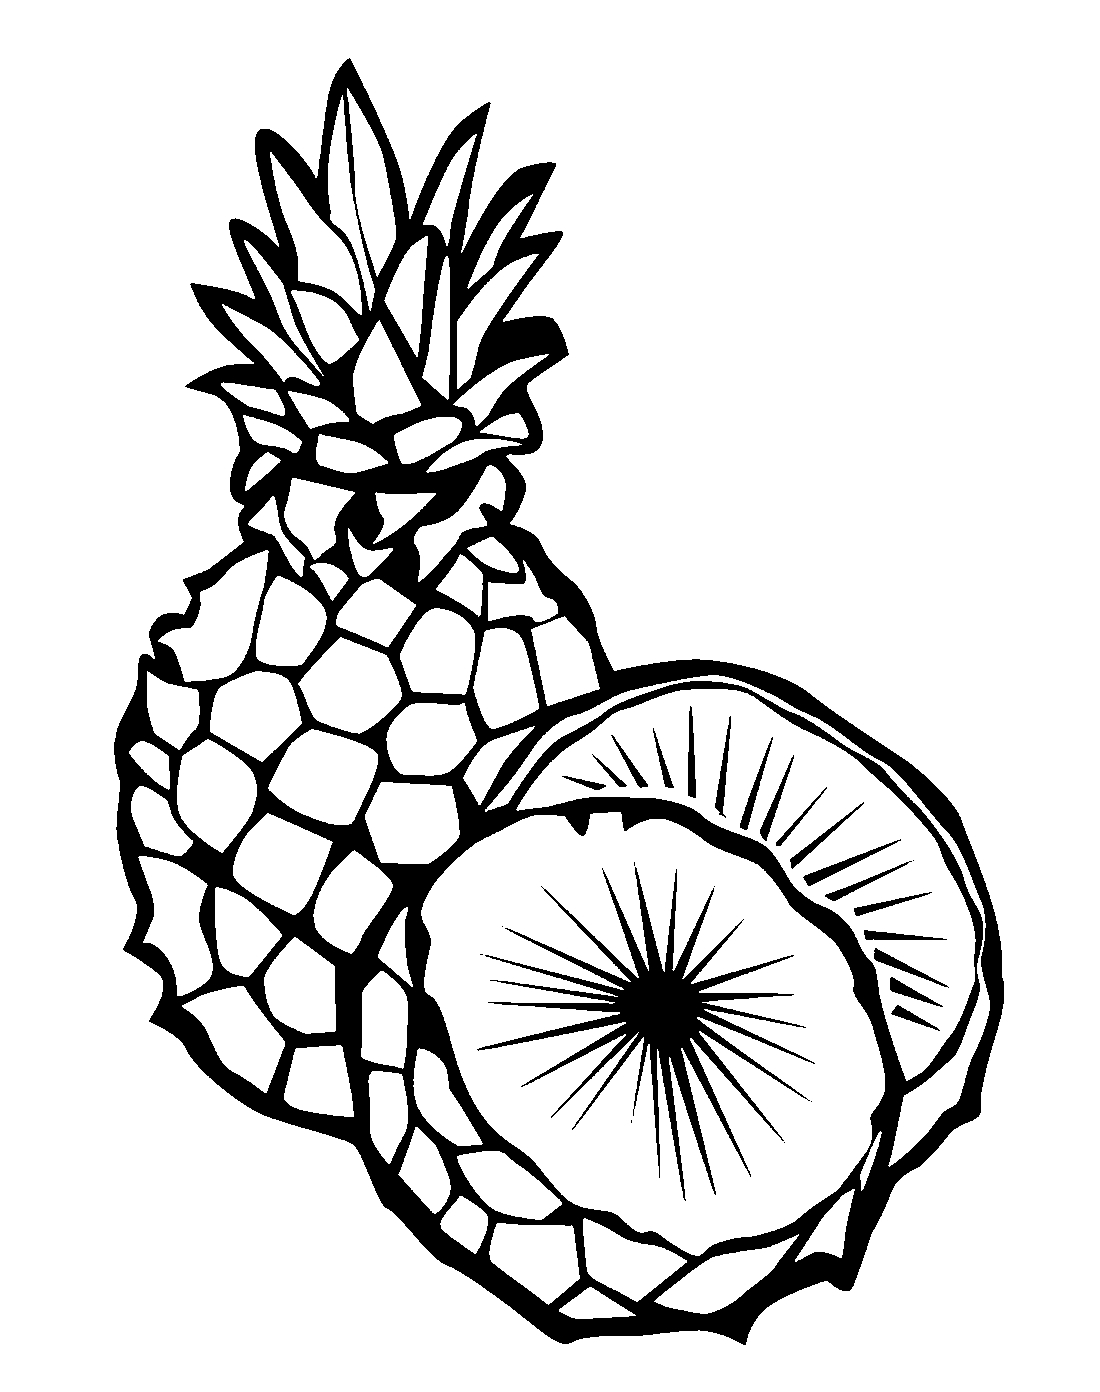 coloring pineapple pineapple free colouring pages coloring pineapple